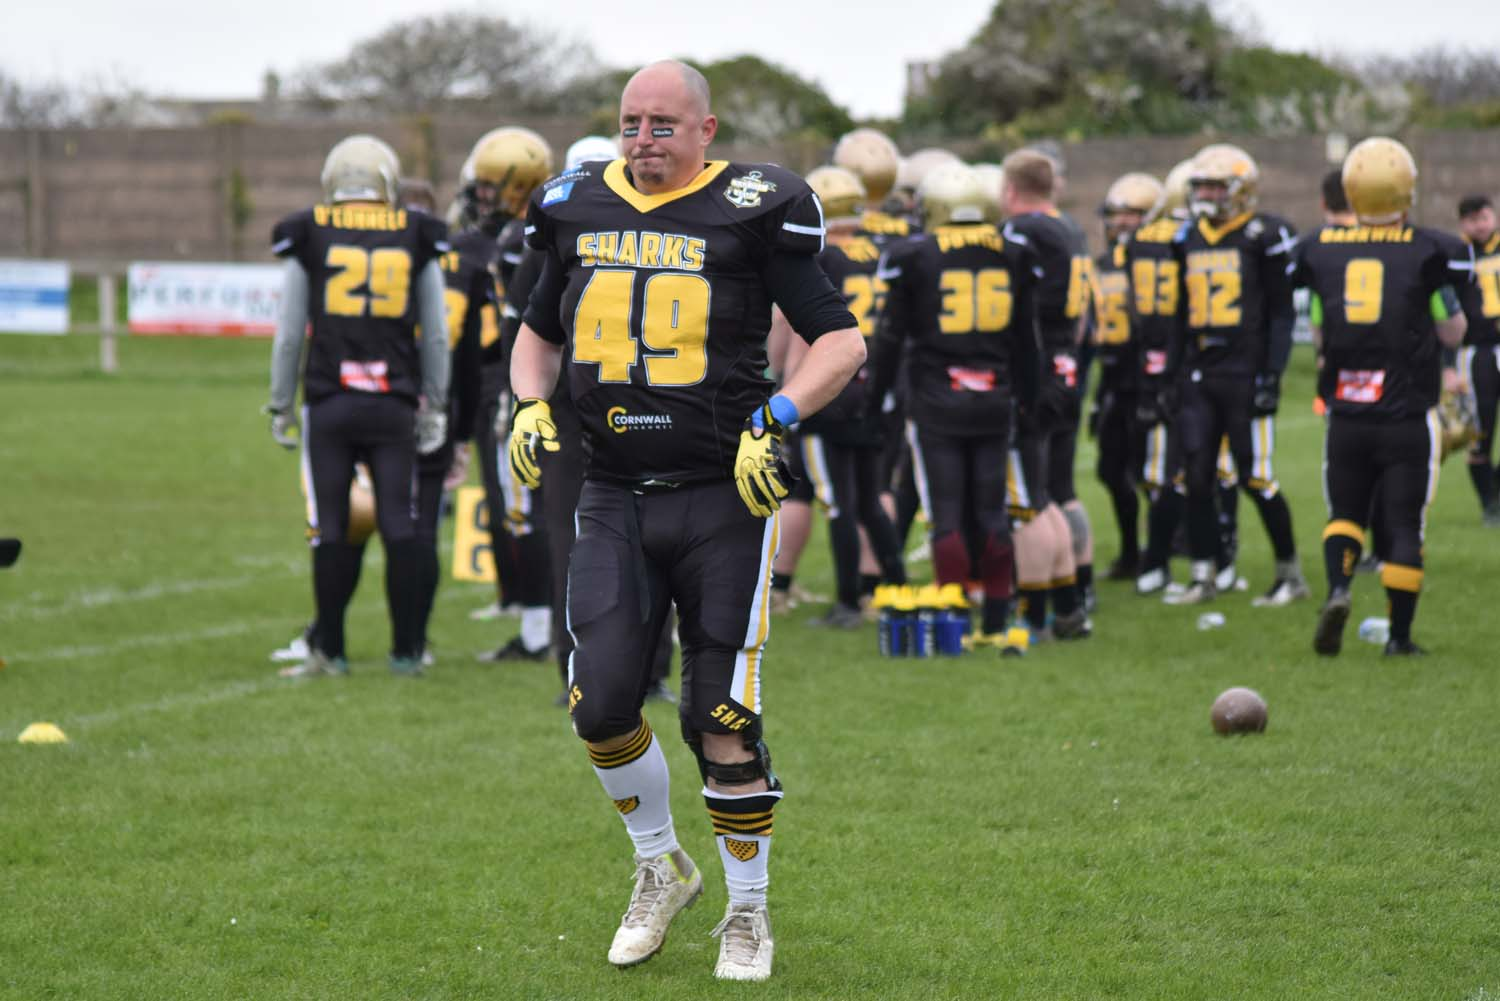 Photo of Cornish Sharks playing Somerset Wyverns in April 2019